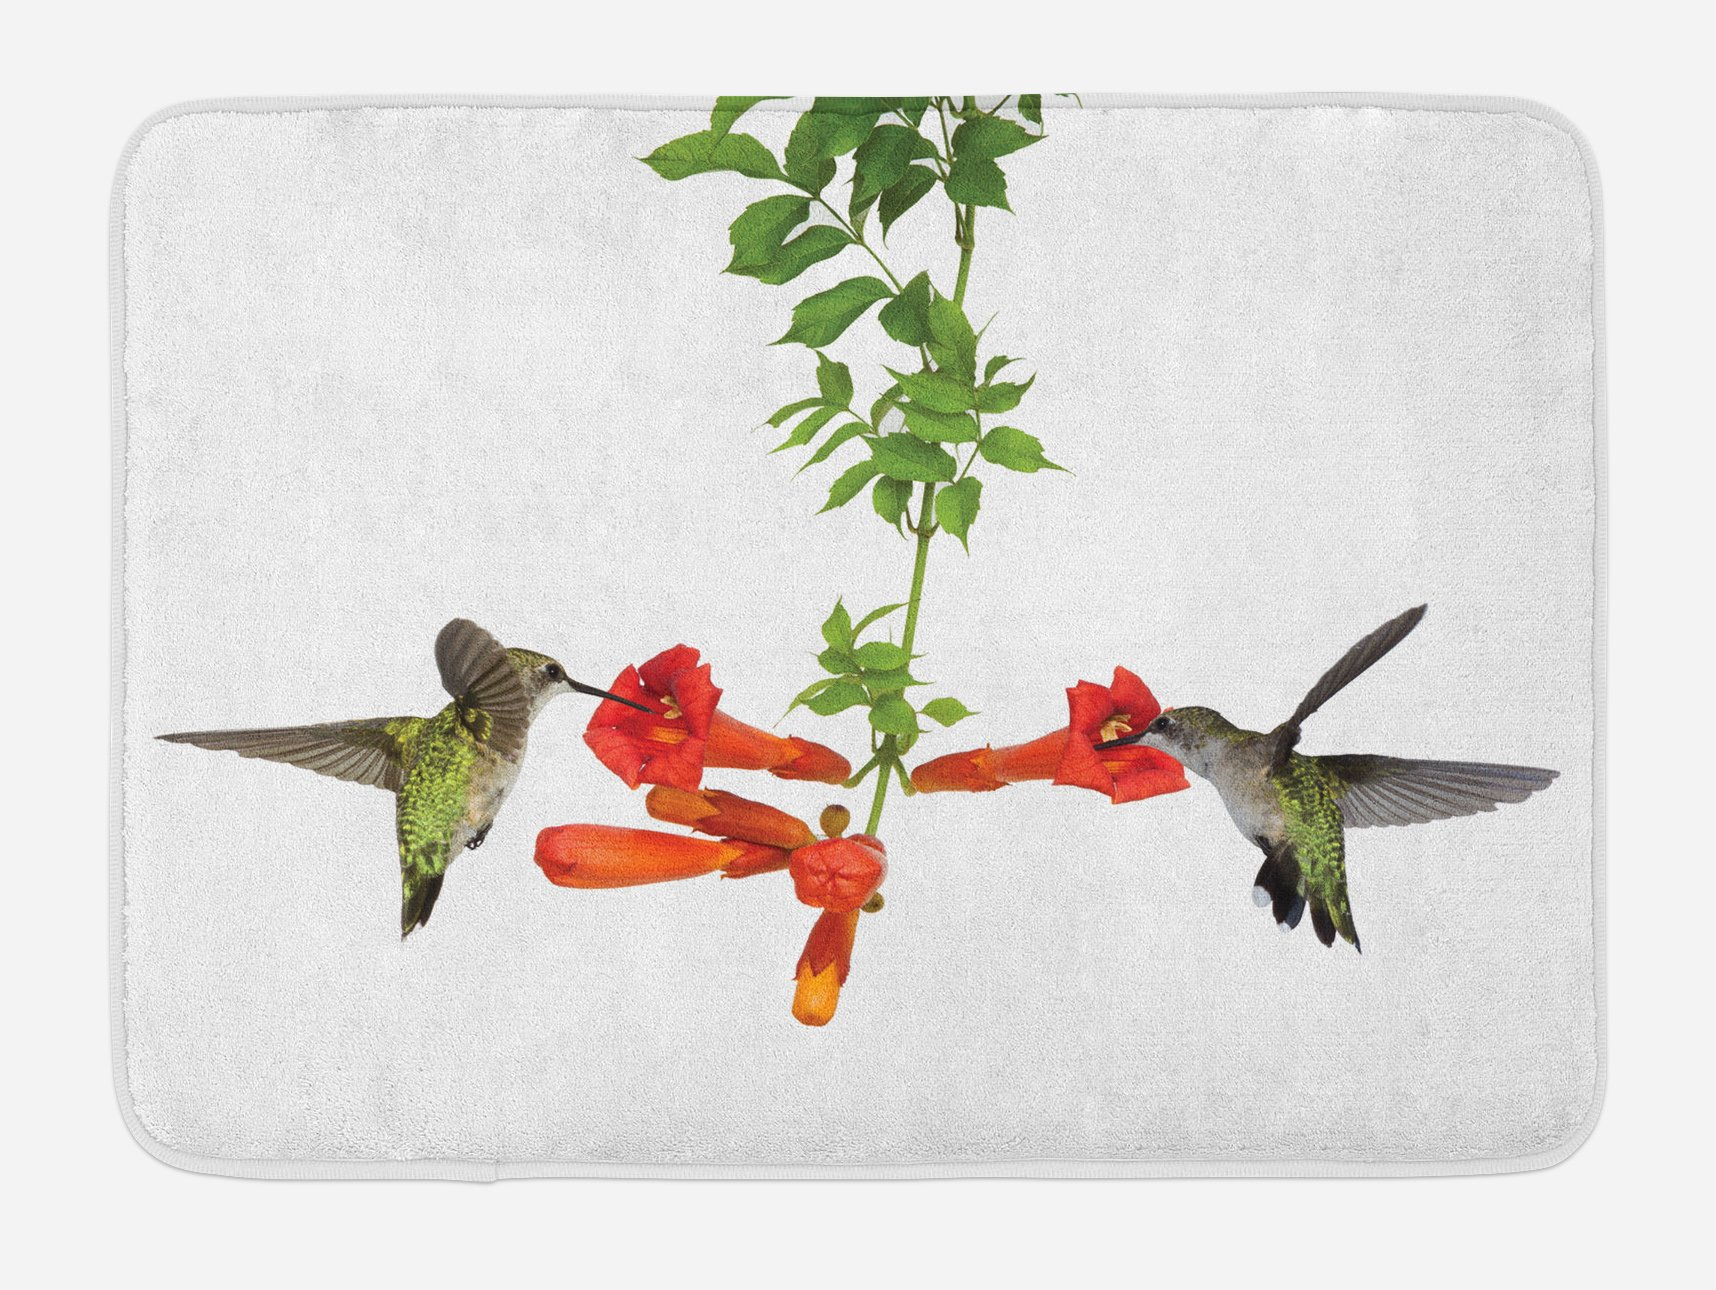 Ambesonne Hummingbirds Bath Mat, Two Hummingbirds Sipping Nectar from a Trumpet Vine Blossoms Summertime, Plush Bathroom Decor Mat with Non Slip Backing, 29.5 W X 17.5 W Inches, Red Black Green